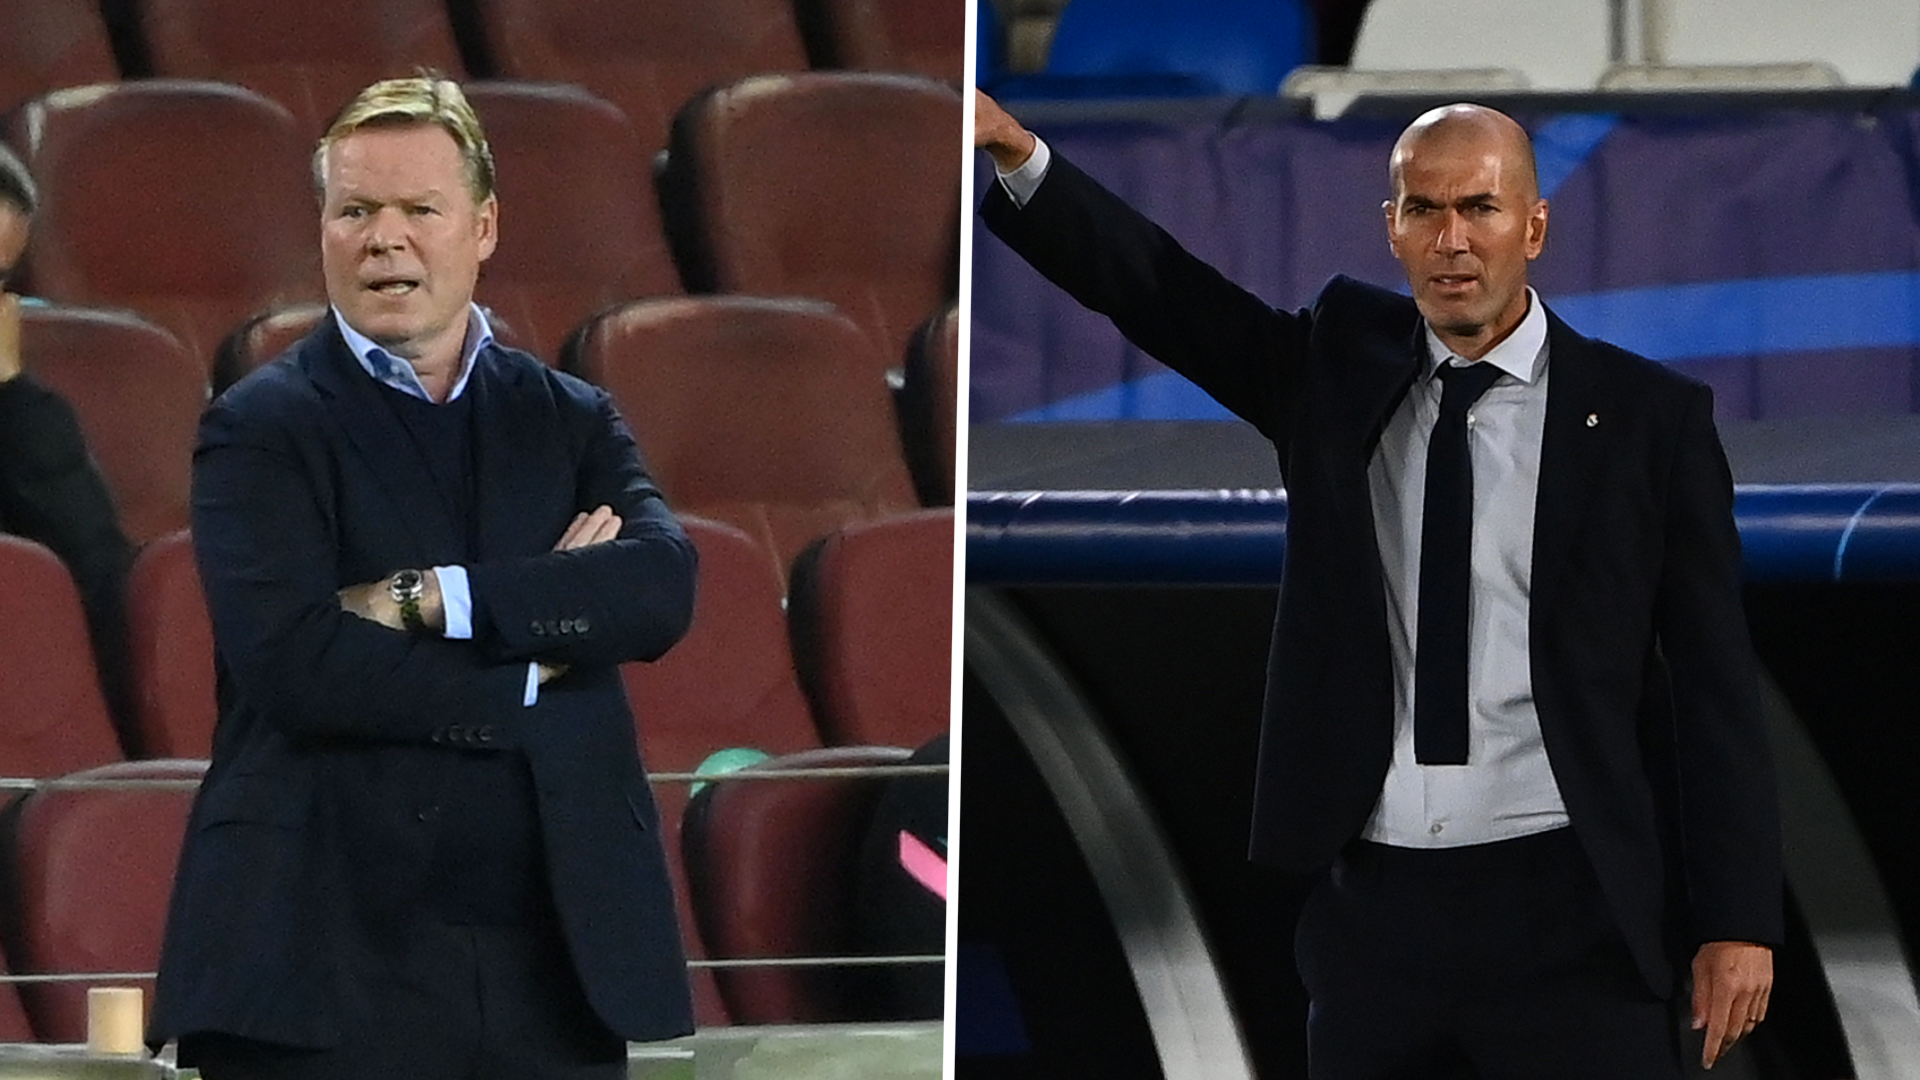 'Its annoying!' - Zidane hits back at Koeman for suggesting referees favour Real Madrid